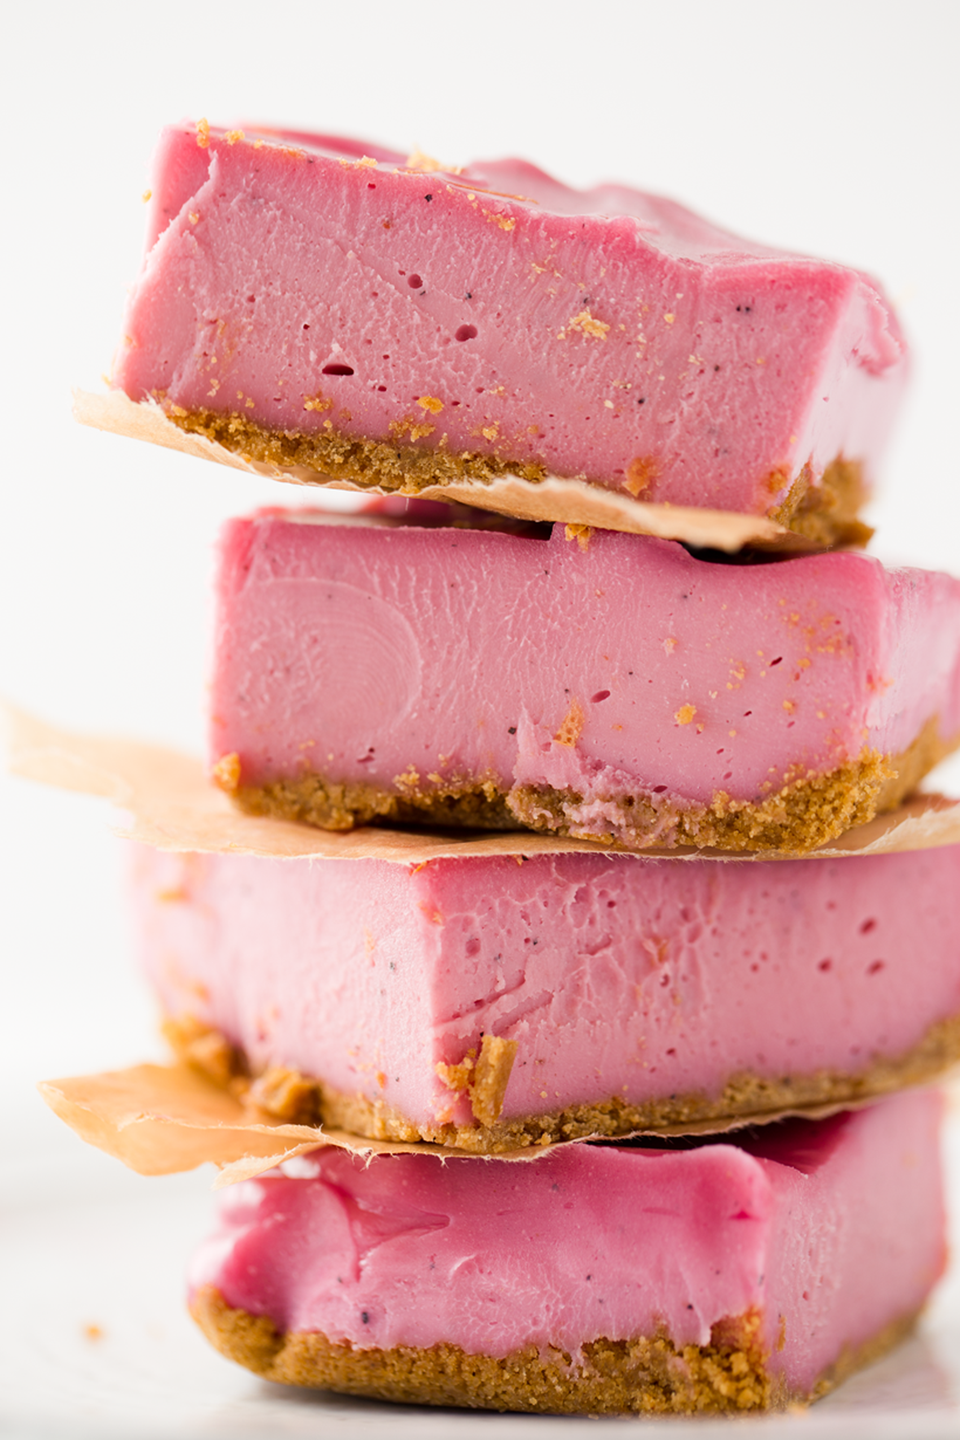 """<p>For a healthy Mother's Day dessert that's still delicious, try these vegan """"cheesecake"""" bars that are made with cashews instead of cream cheese.</p><p><strong>Get the recipe at <a href=""""http://kblog.lunchboxbunch.com/2016/06/vegan-pink-cheesecake-bars.html"""" rel=""""nofollow noopener"""" target=""""_blank"""" data-ylk=""""slk:Healthy. Happy. Life"""" class=""""link rapid-noclick-resp"""">Healthy. Happy. Life</a>.</strong></p><p><a class=""""link rapid-noclick-resp"""" href=""""https://www.amazon.com/Hamilton-Beach-70725A-FBA_70725-Processor/dp/B00KHLN7K2?tag=syn-yahoo-20&ascsubtag=%5Bartid%7C10050.g.4238%5Bsrc%7Cyahoo-us"""" rel=""""nofollow noopener"""" target=""""_blank"""" data-ylk=""""slk:SHOP FOOD PROCESSORS"""">SHOP FOOD PROCESSORS</a> </p>"""